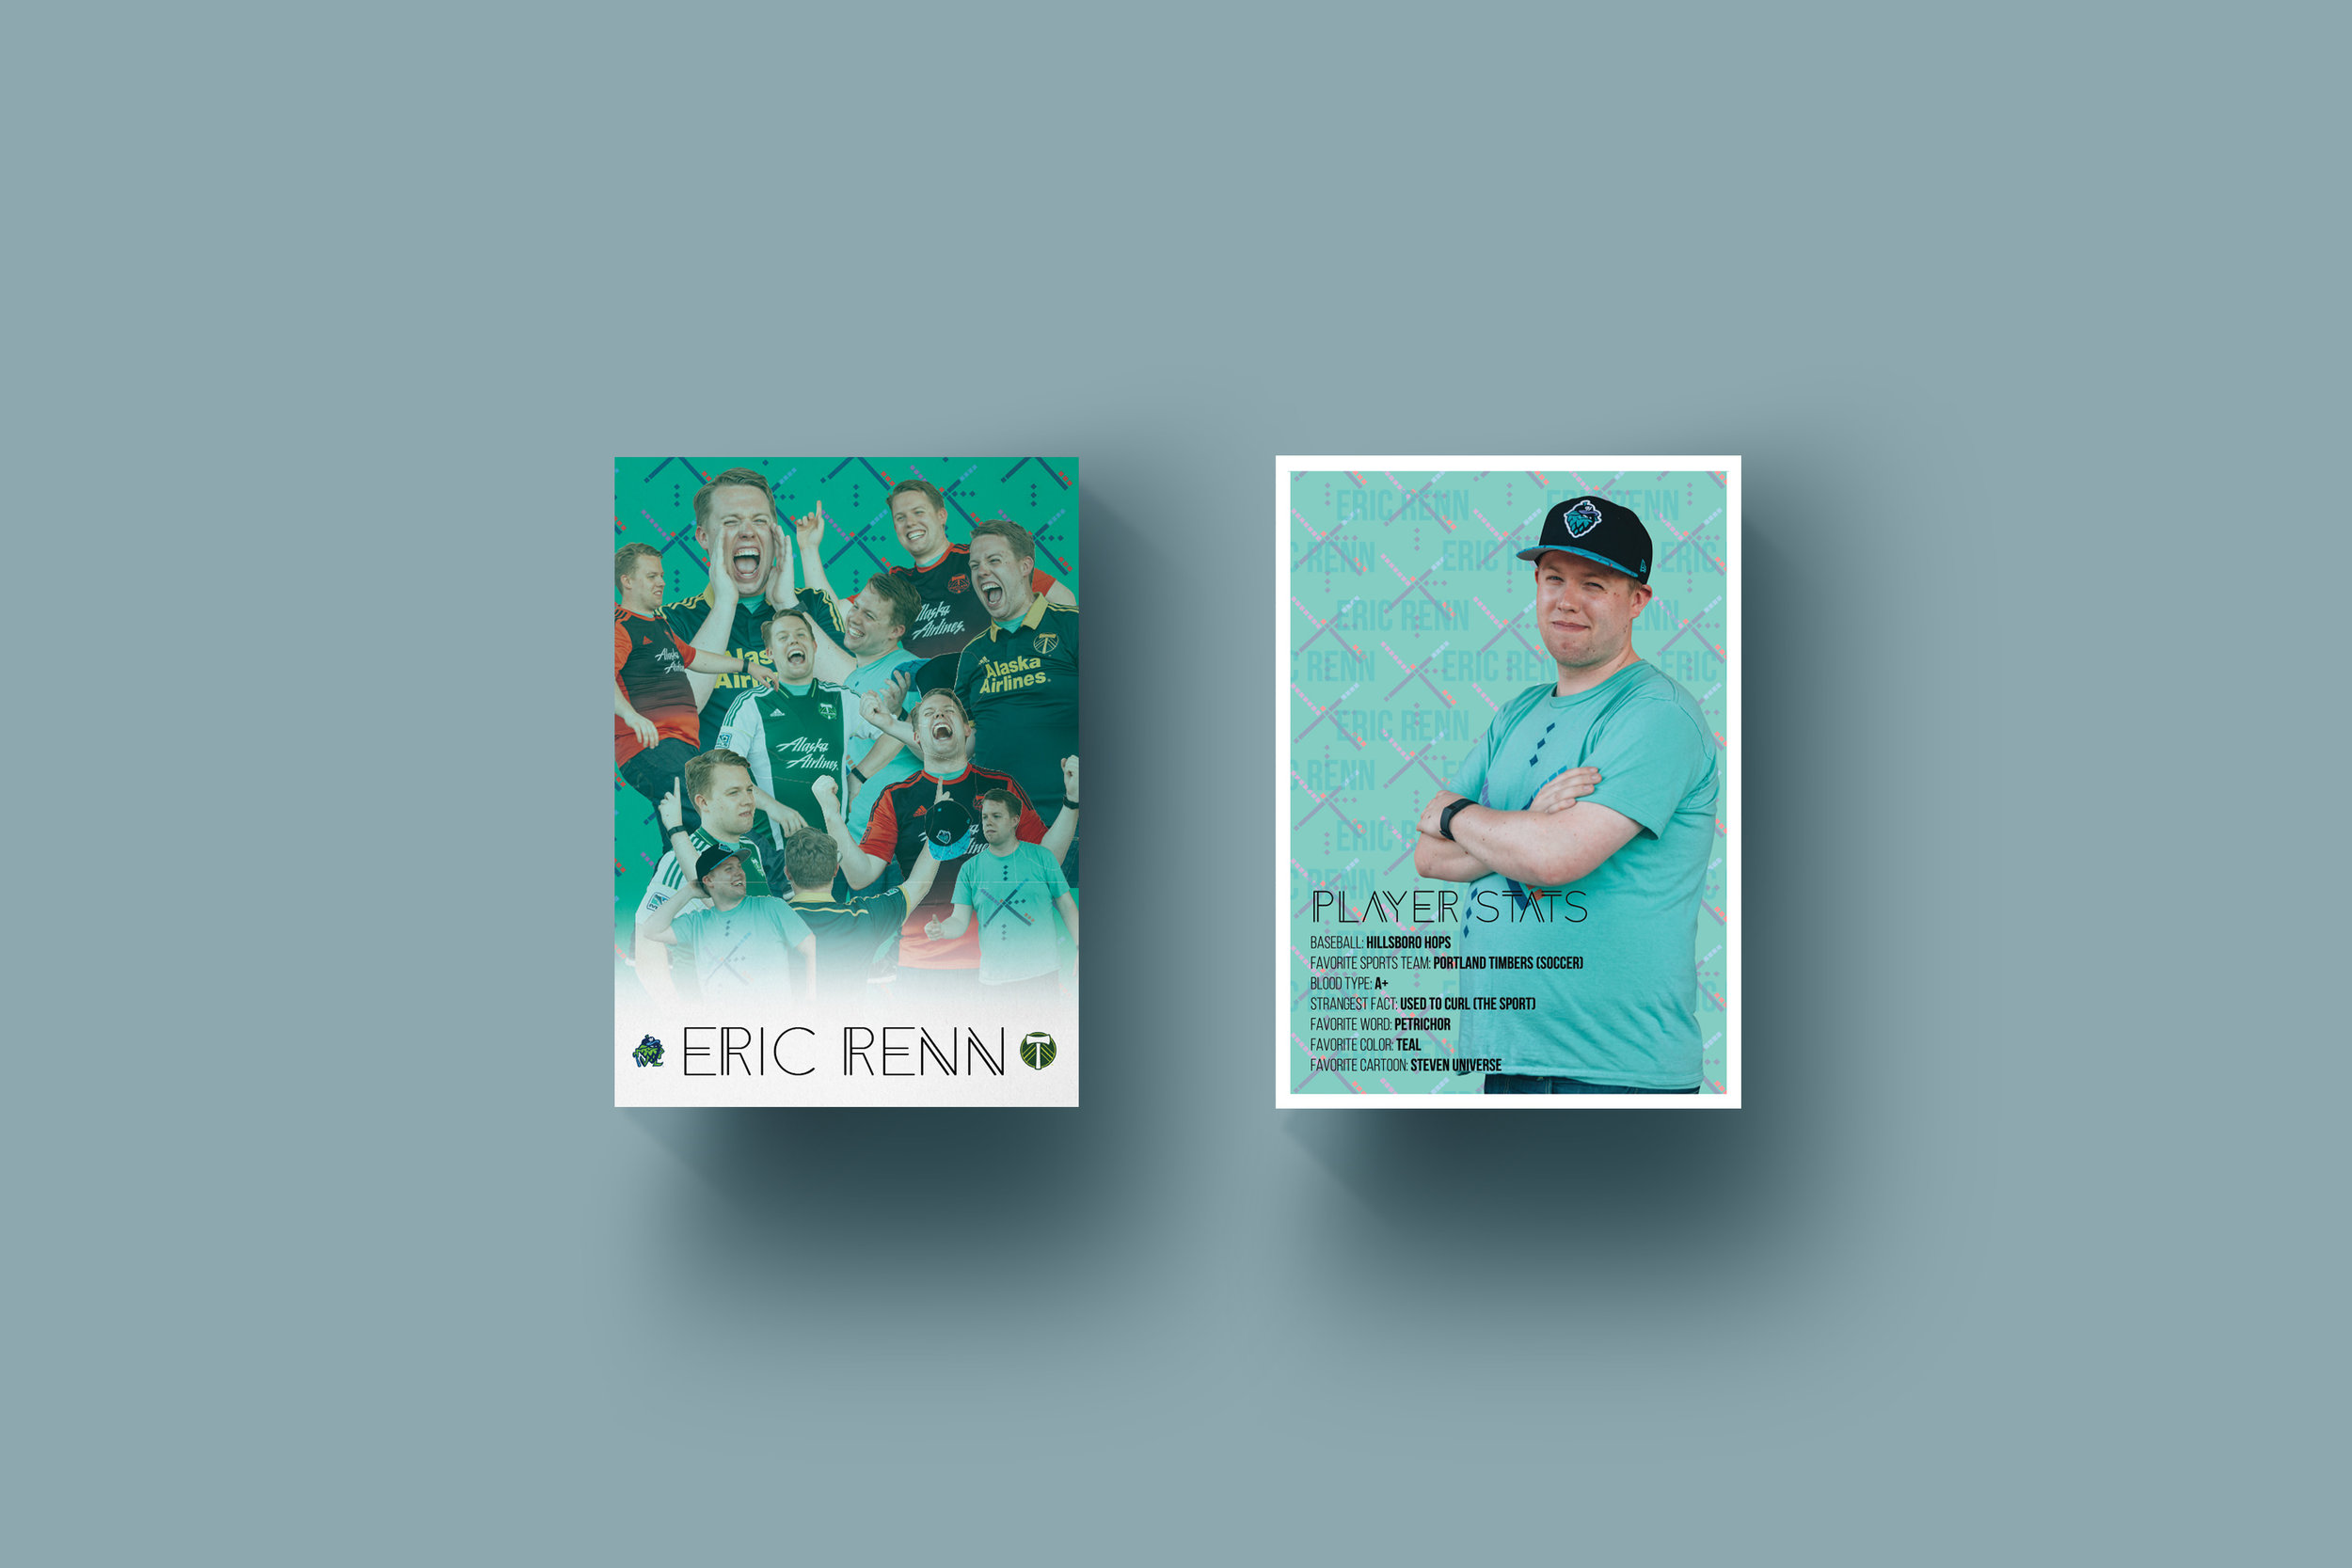 ERenn Baseball Card.jpg